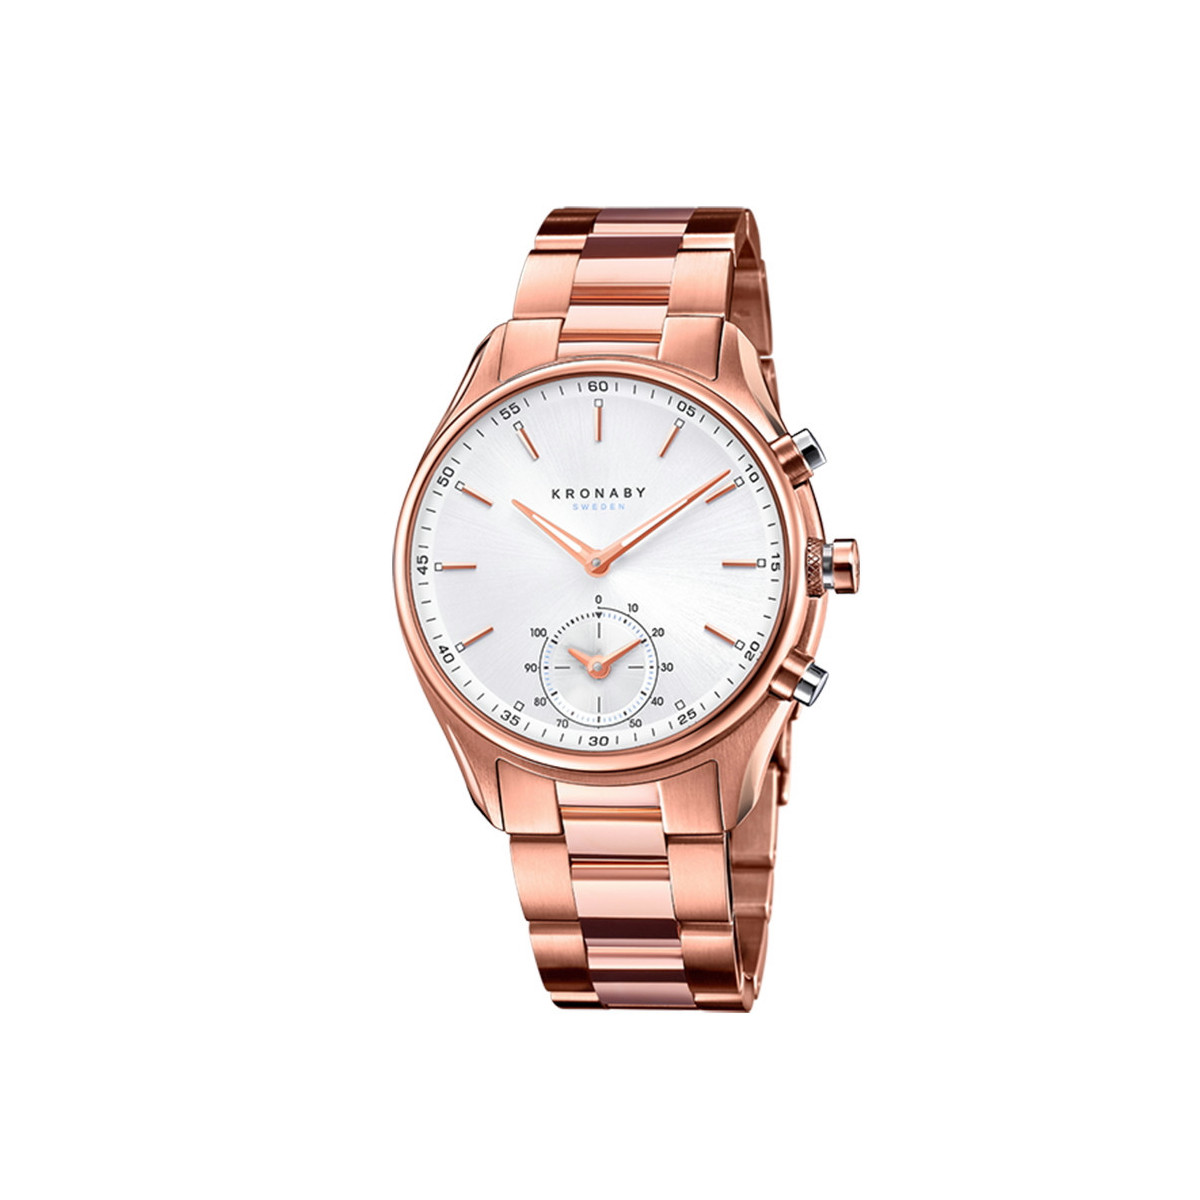 KRONABY SEKEL SMALL SECOND PVD PINK